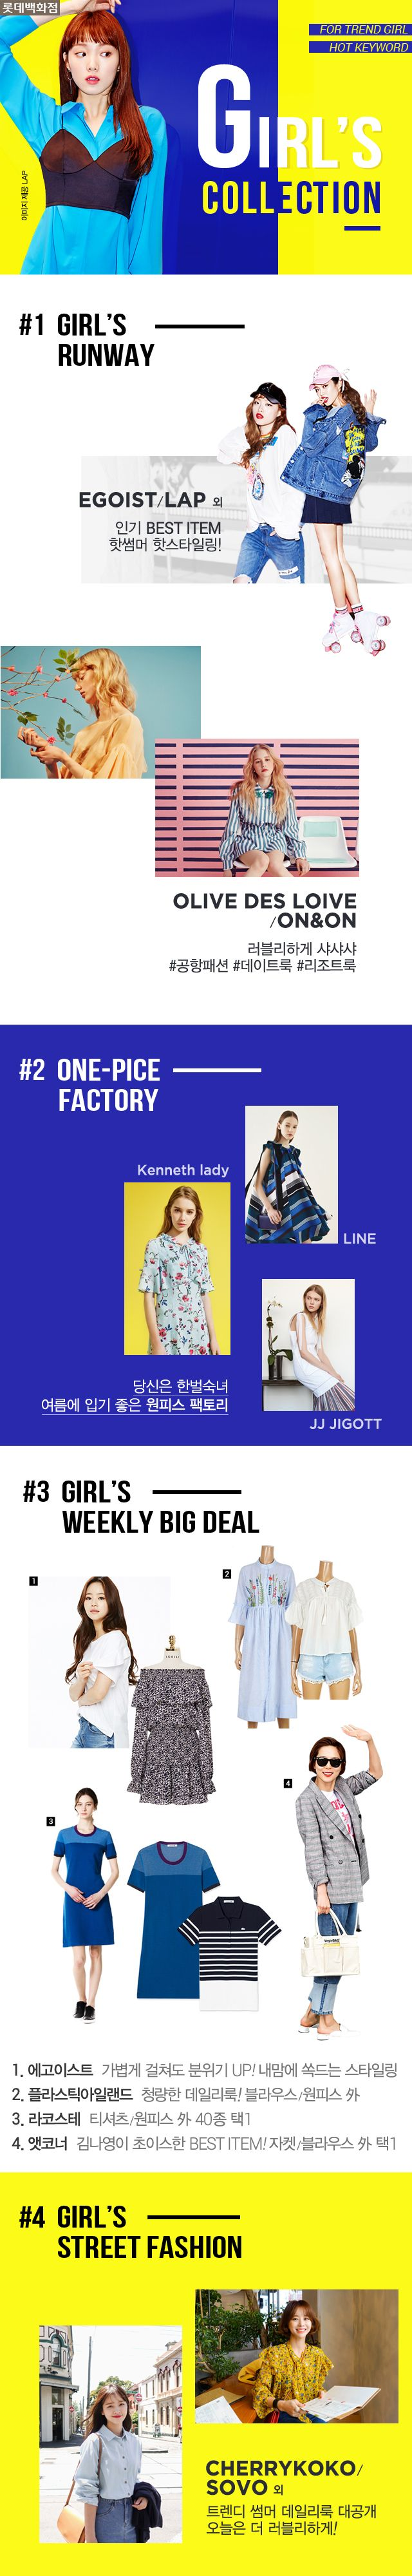 Girl's collection (mo)_170508_Designed by 박지원